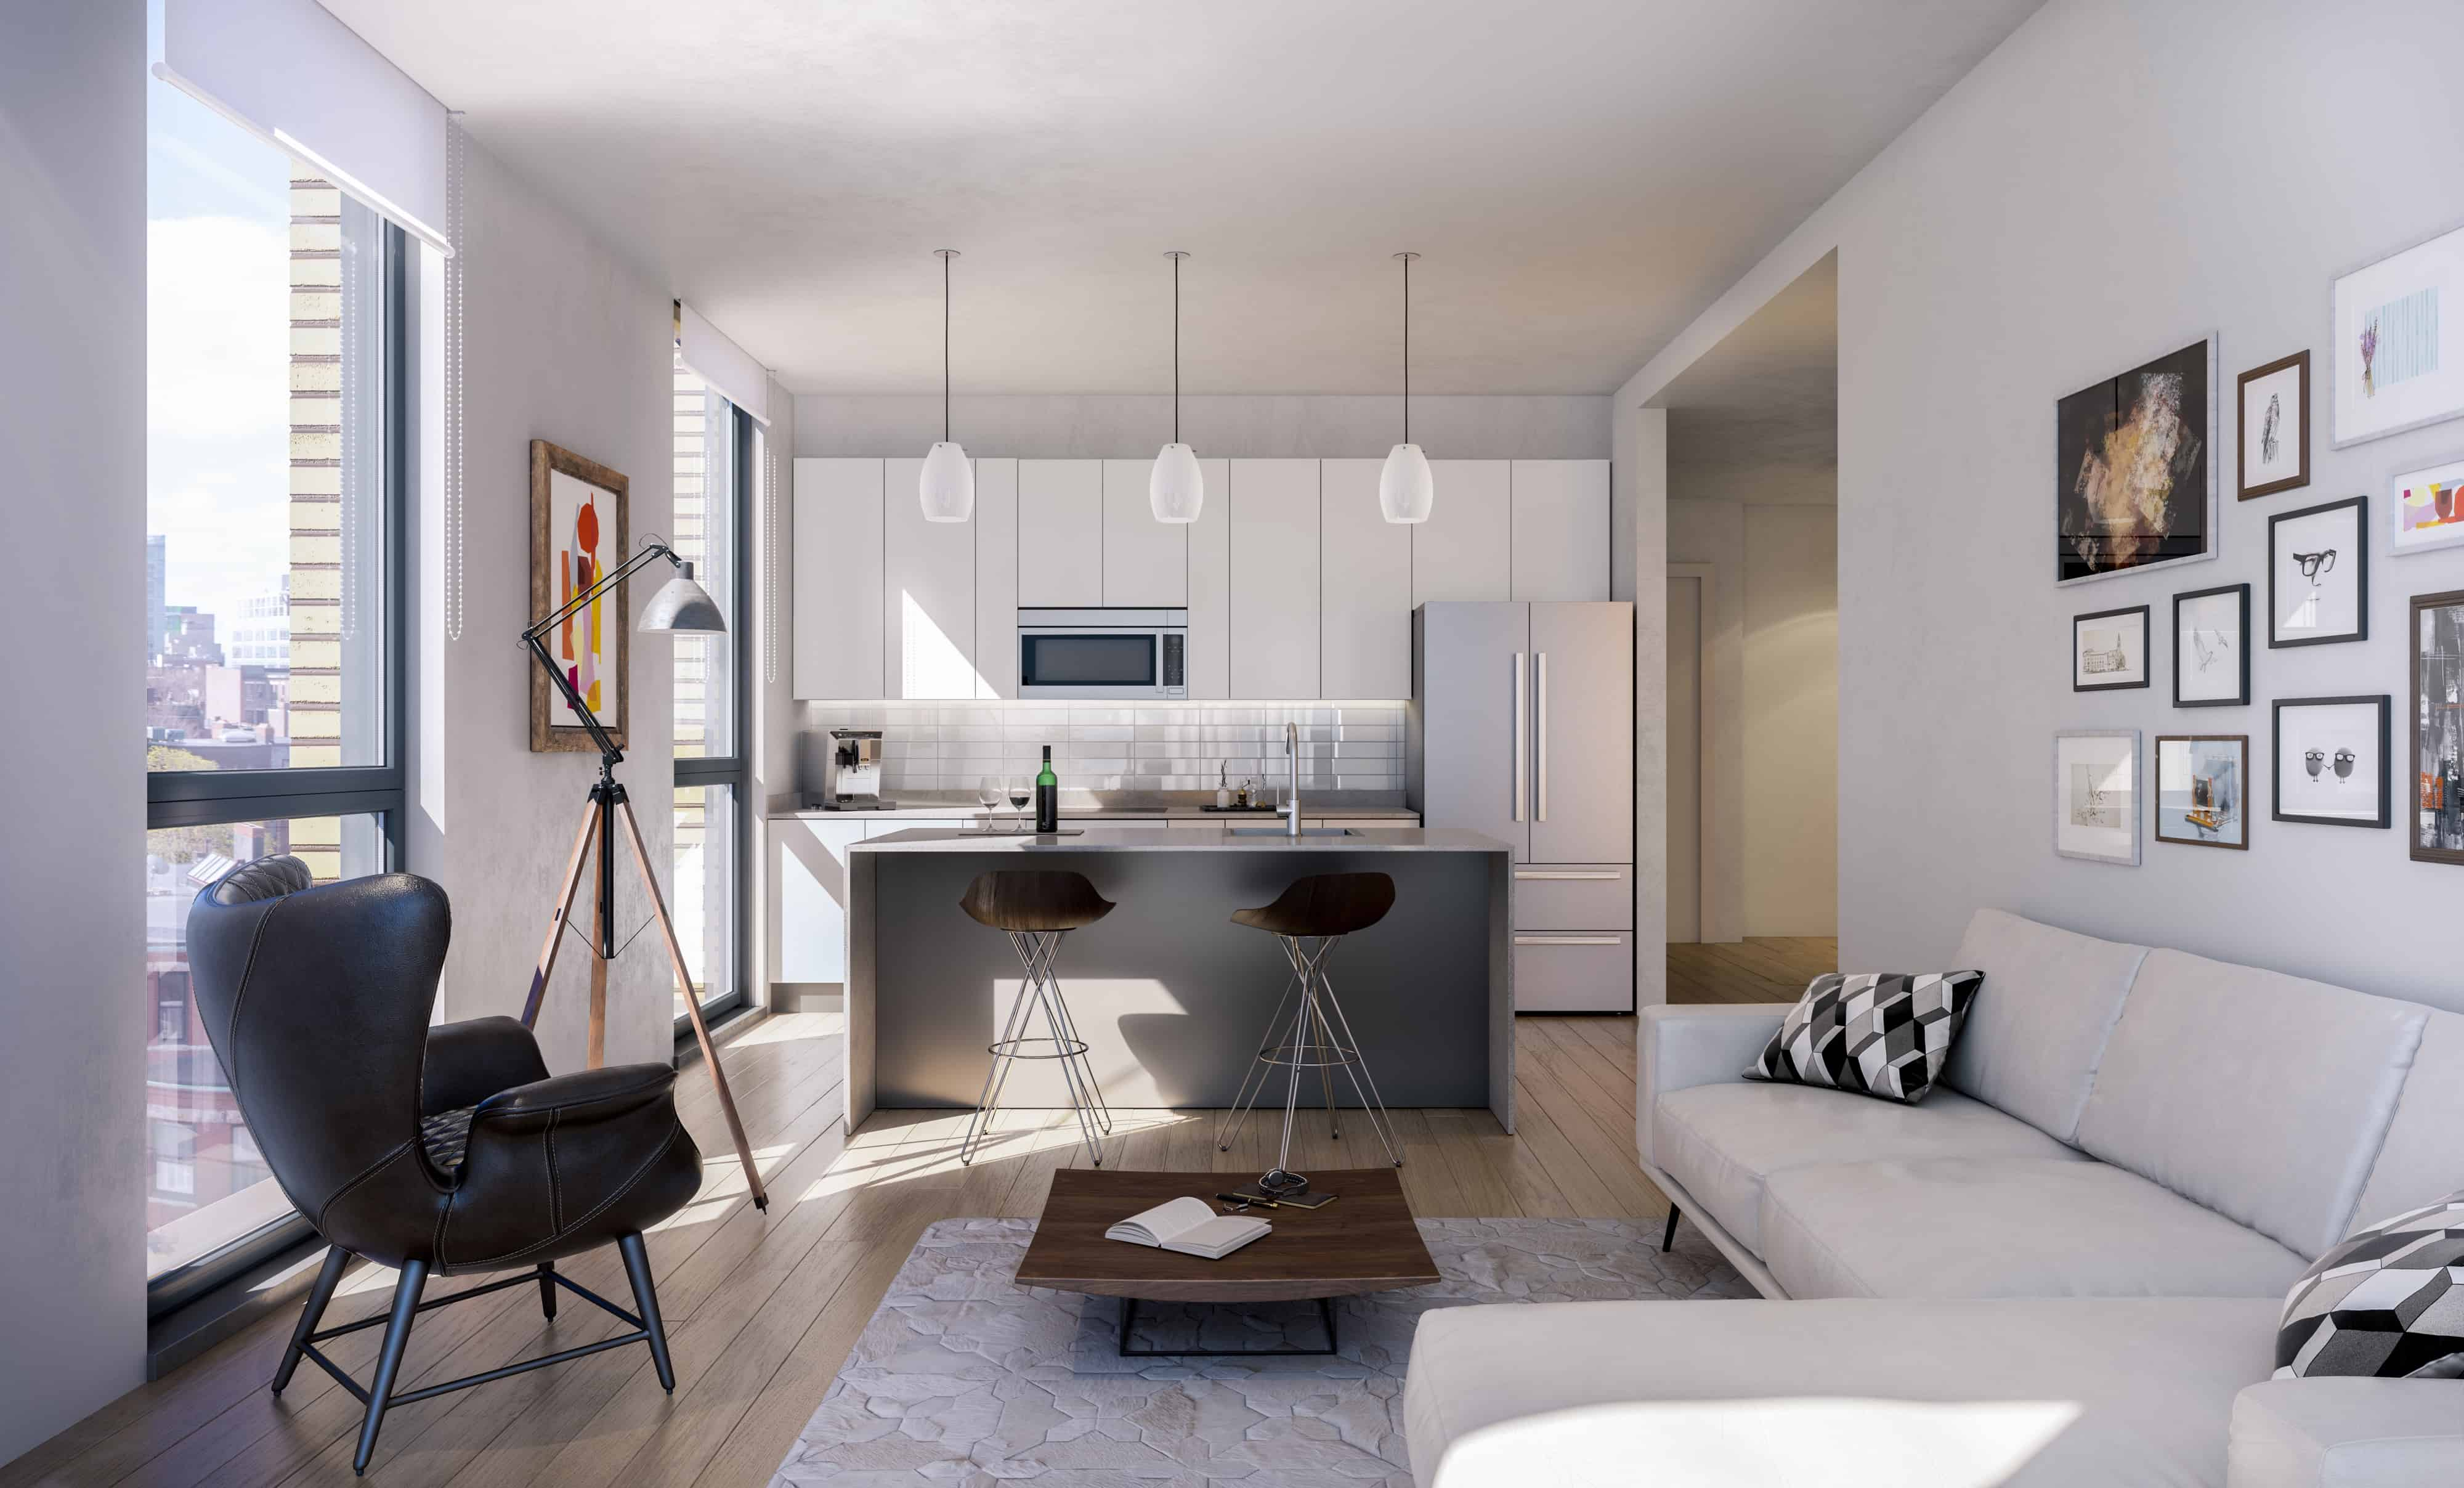 interior living and kitchen space